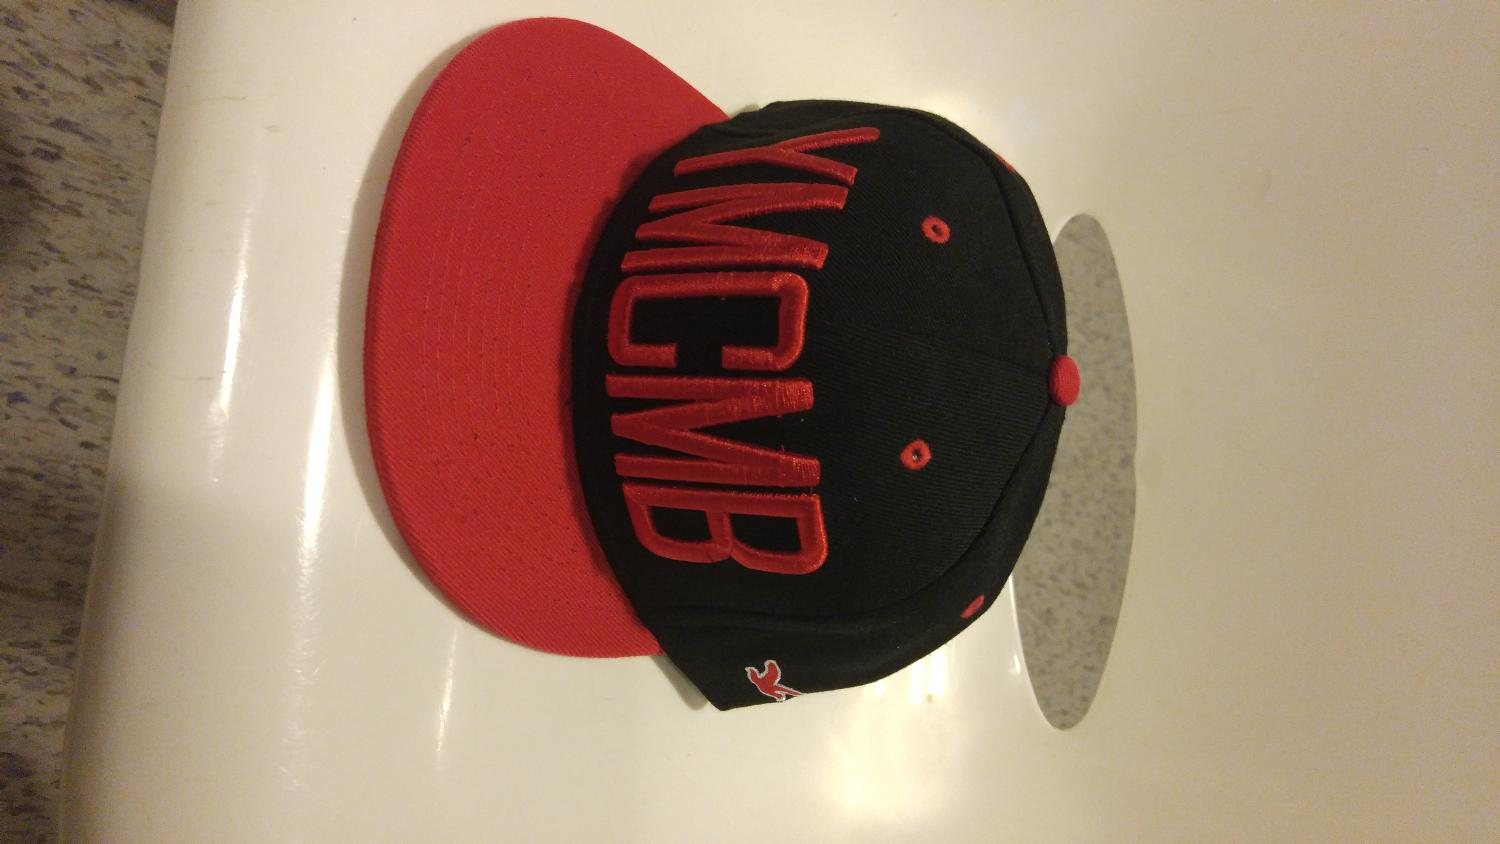 b96cdc2c2e6a6 Best New Black red Hollister Ymcmb Snapback for sale in Hanover ...